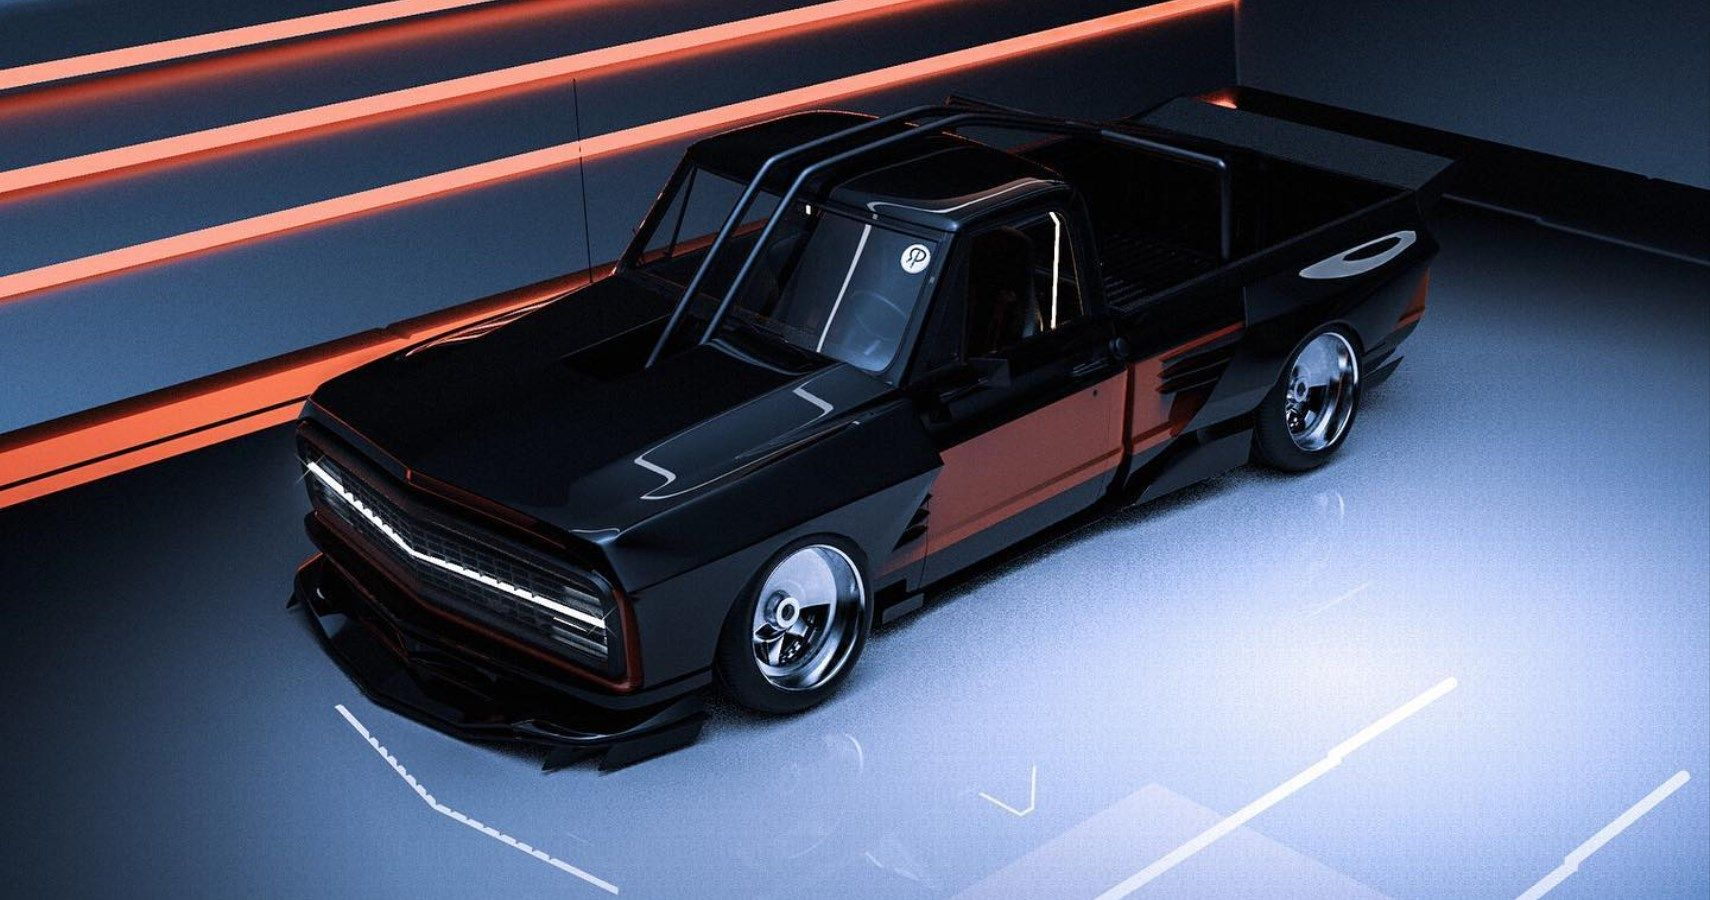 Check Out This Chevy C10 That Looks Ready For Drifting | HotCars